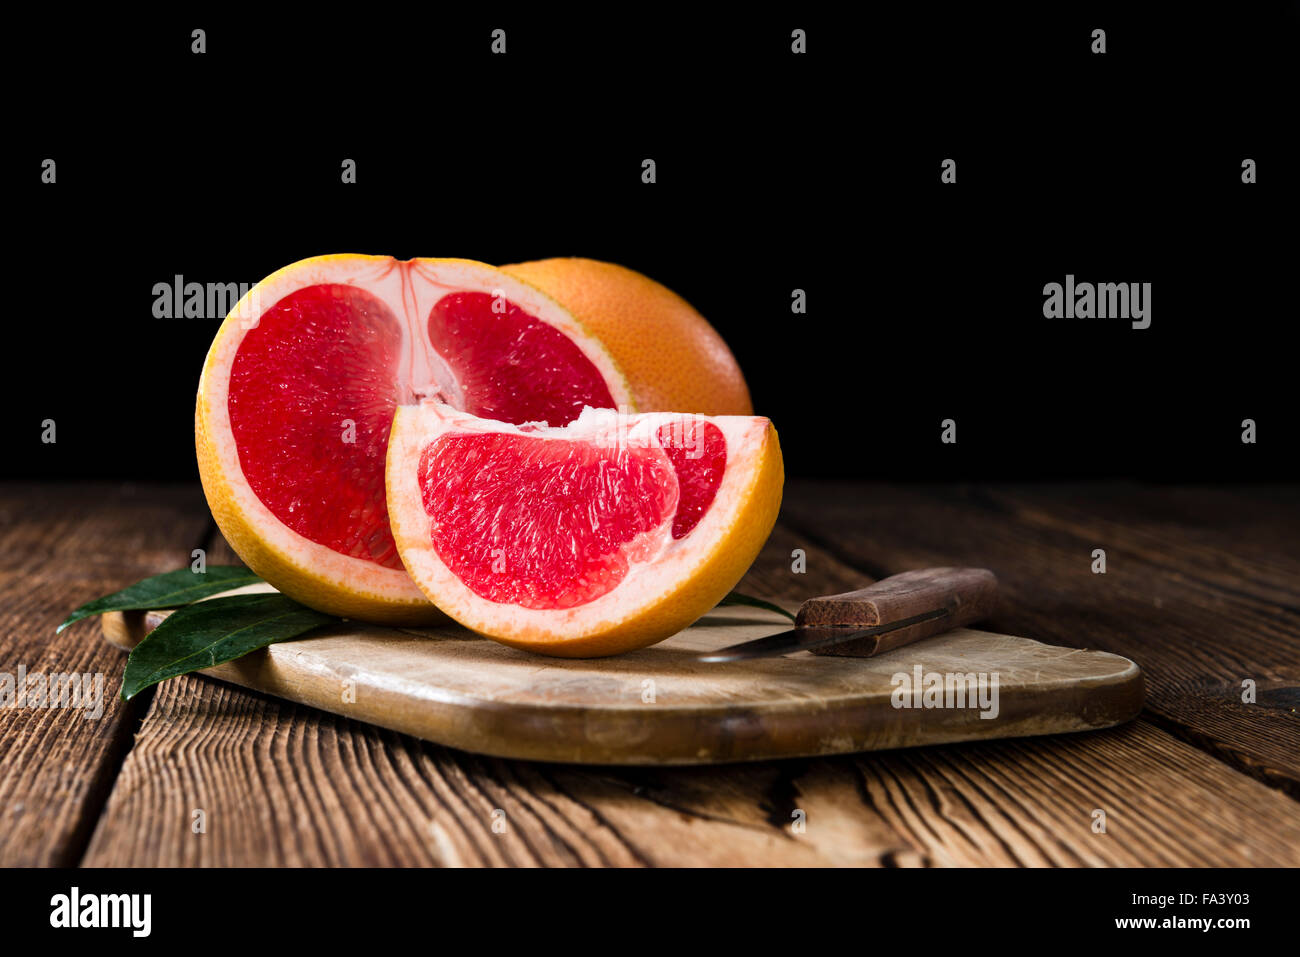 Portion of fresh Grapefruit on an old wooden table (close-up shot) - Stock Image